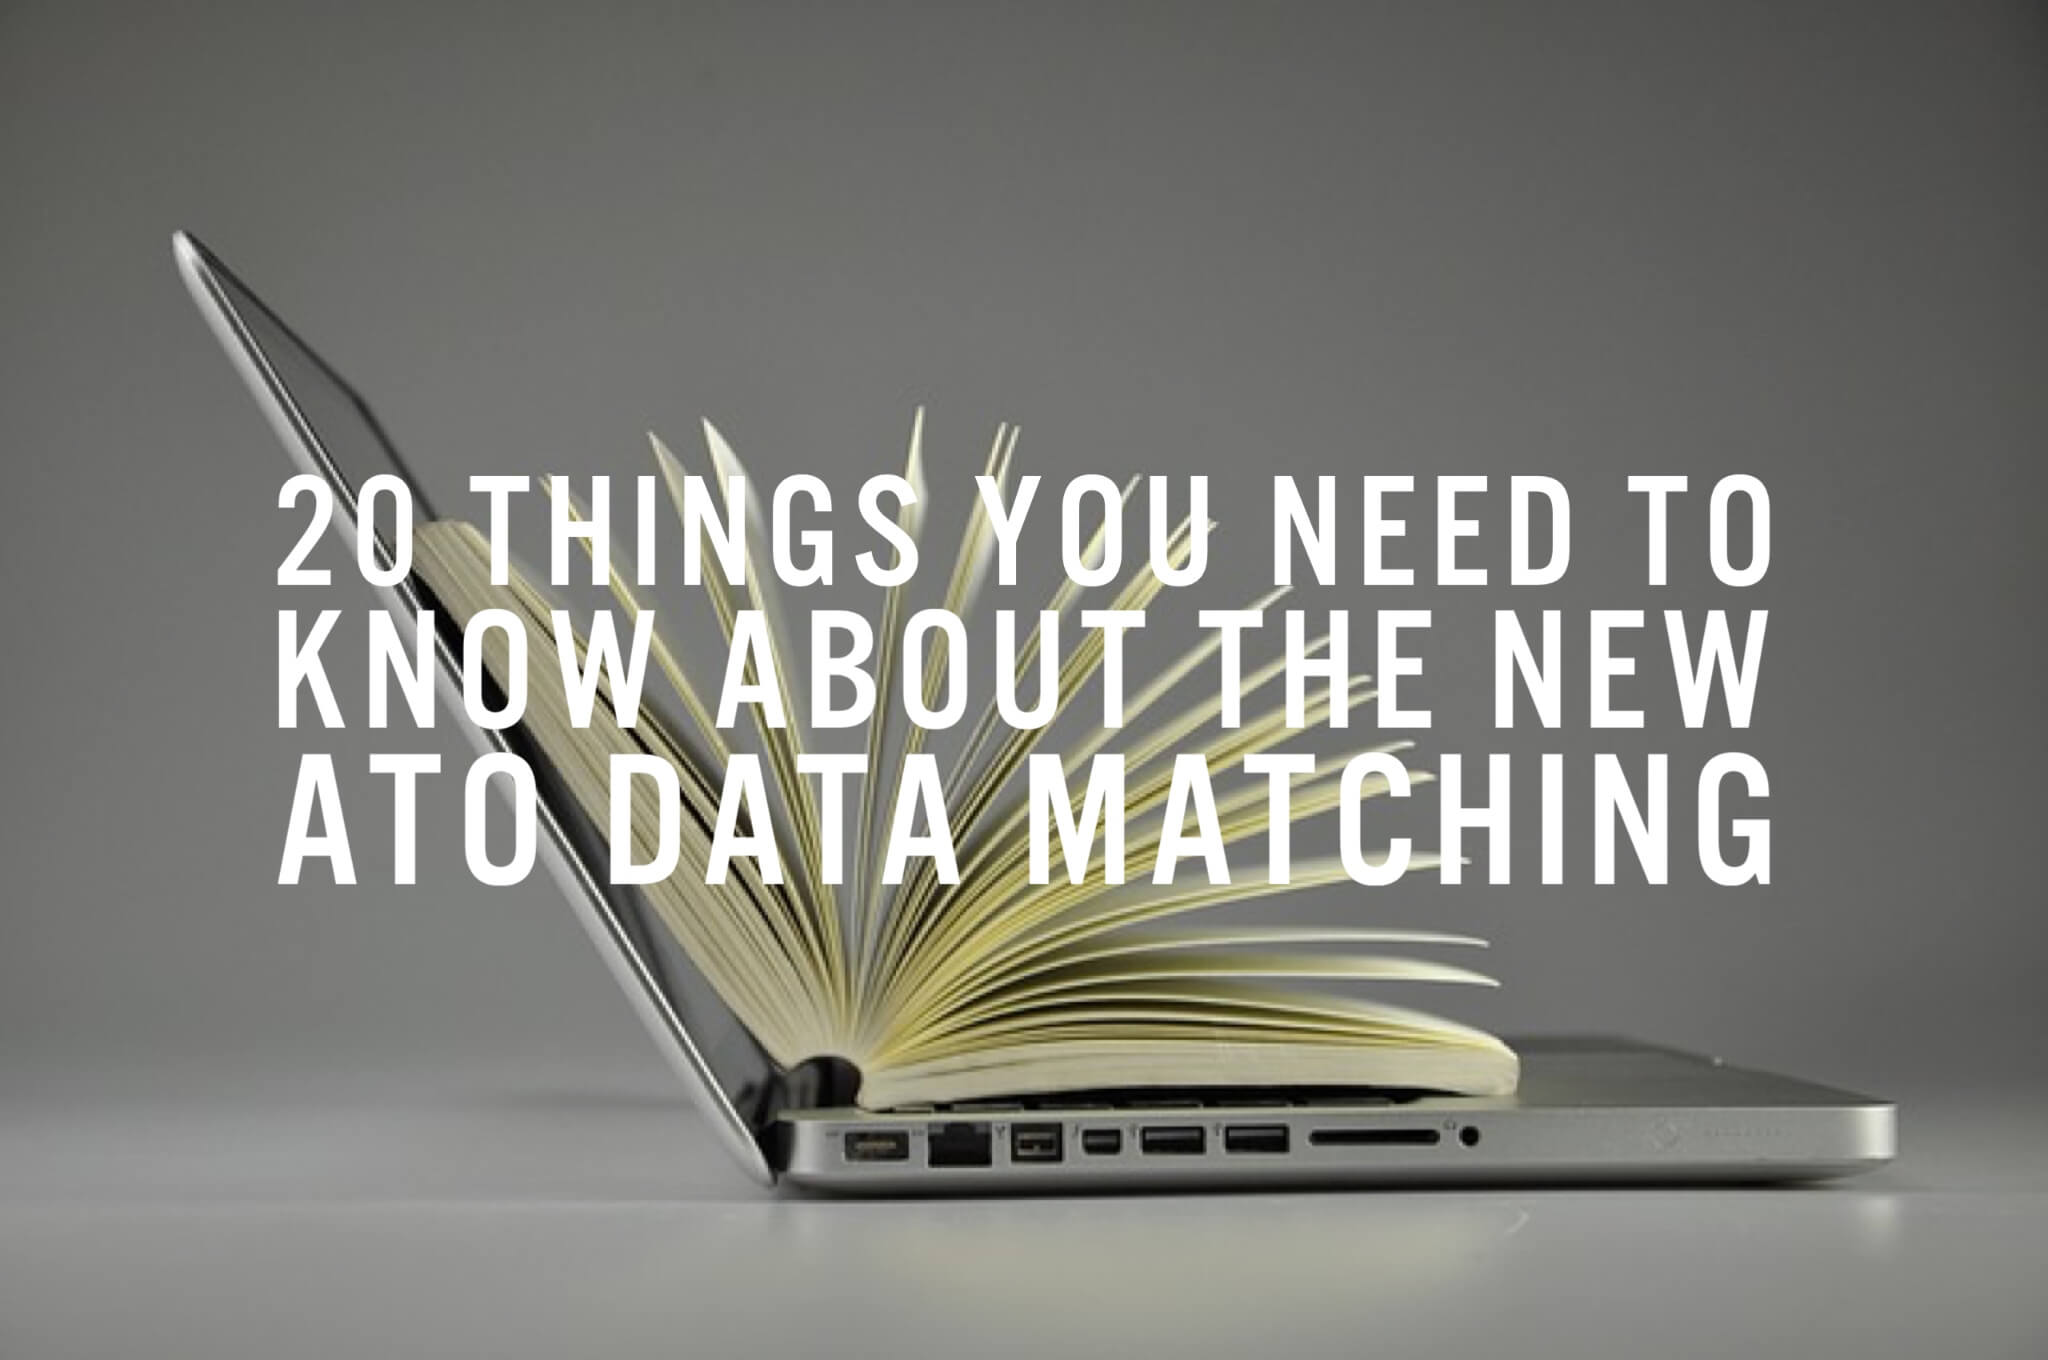 20 things you need to know about the new ATO data matching